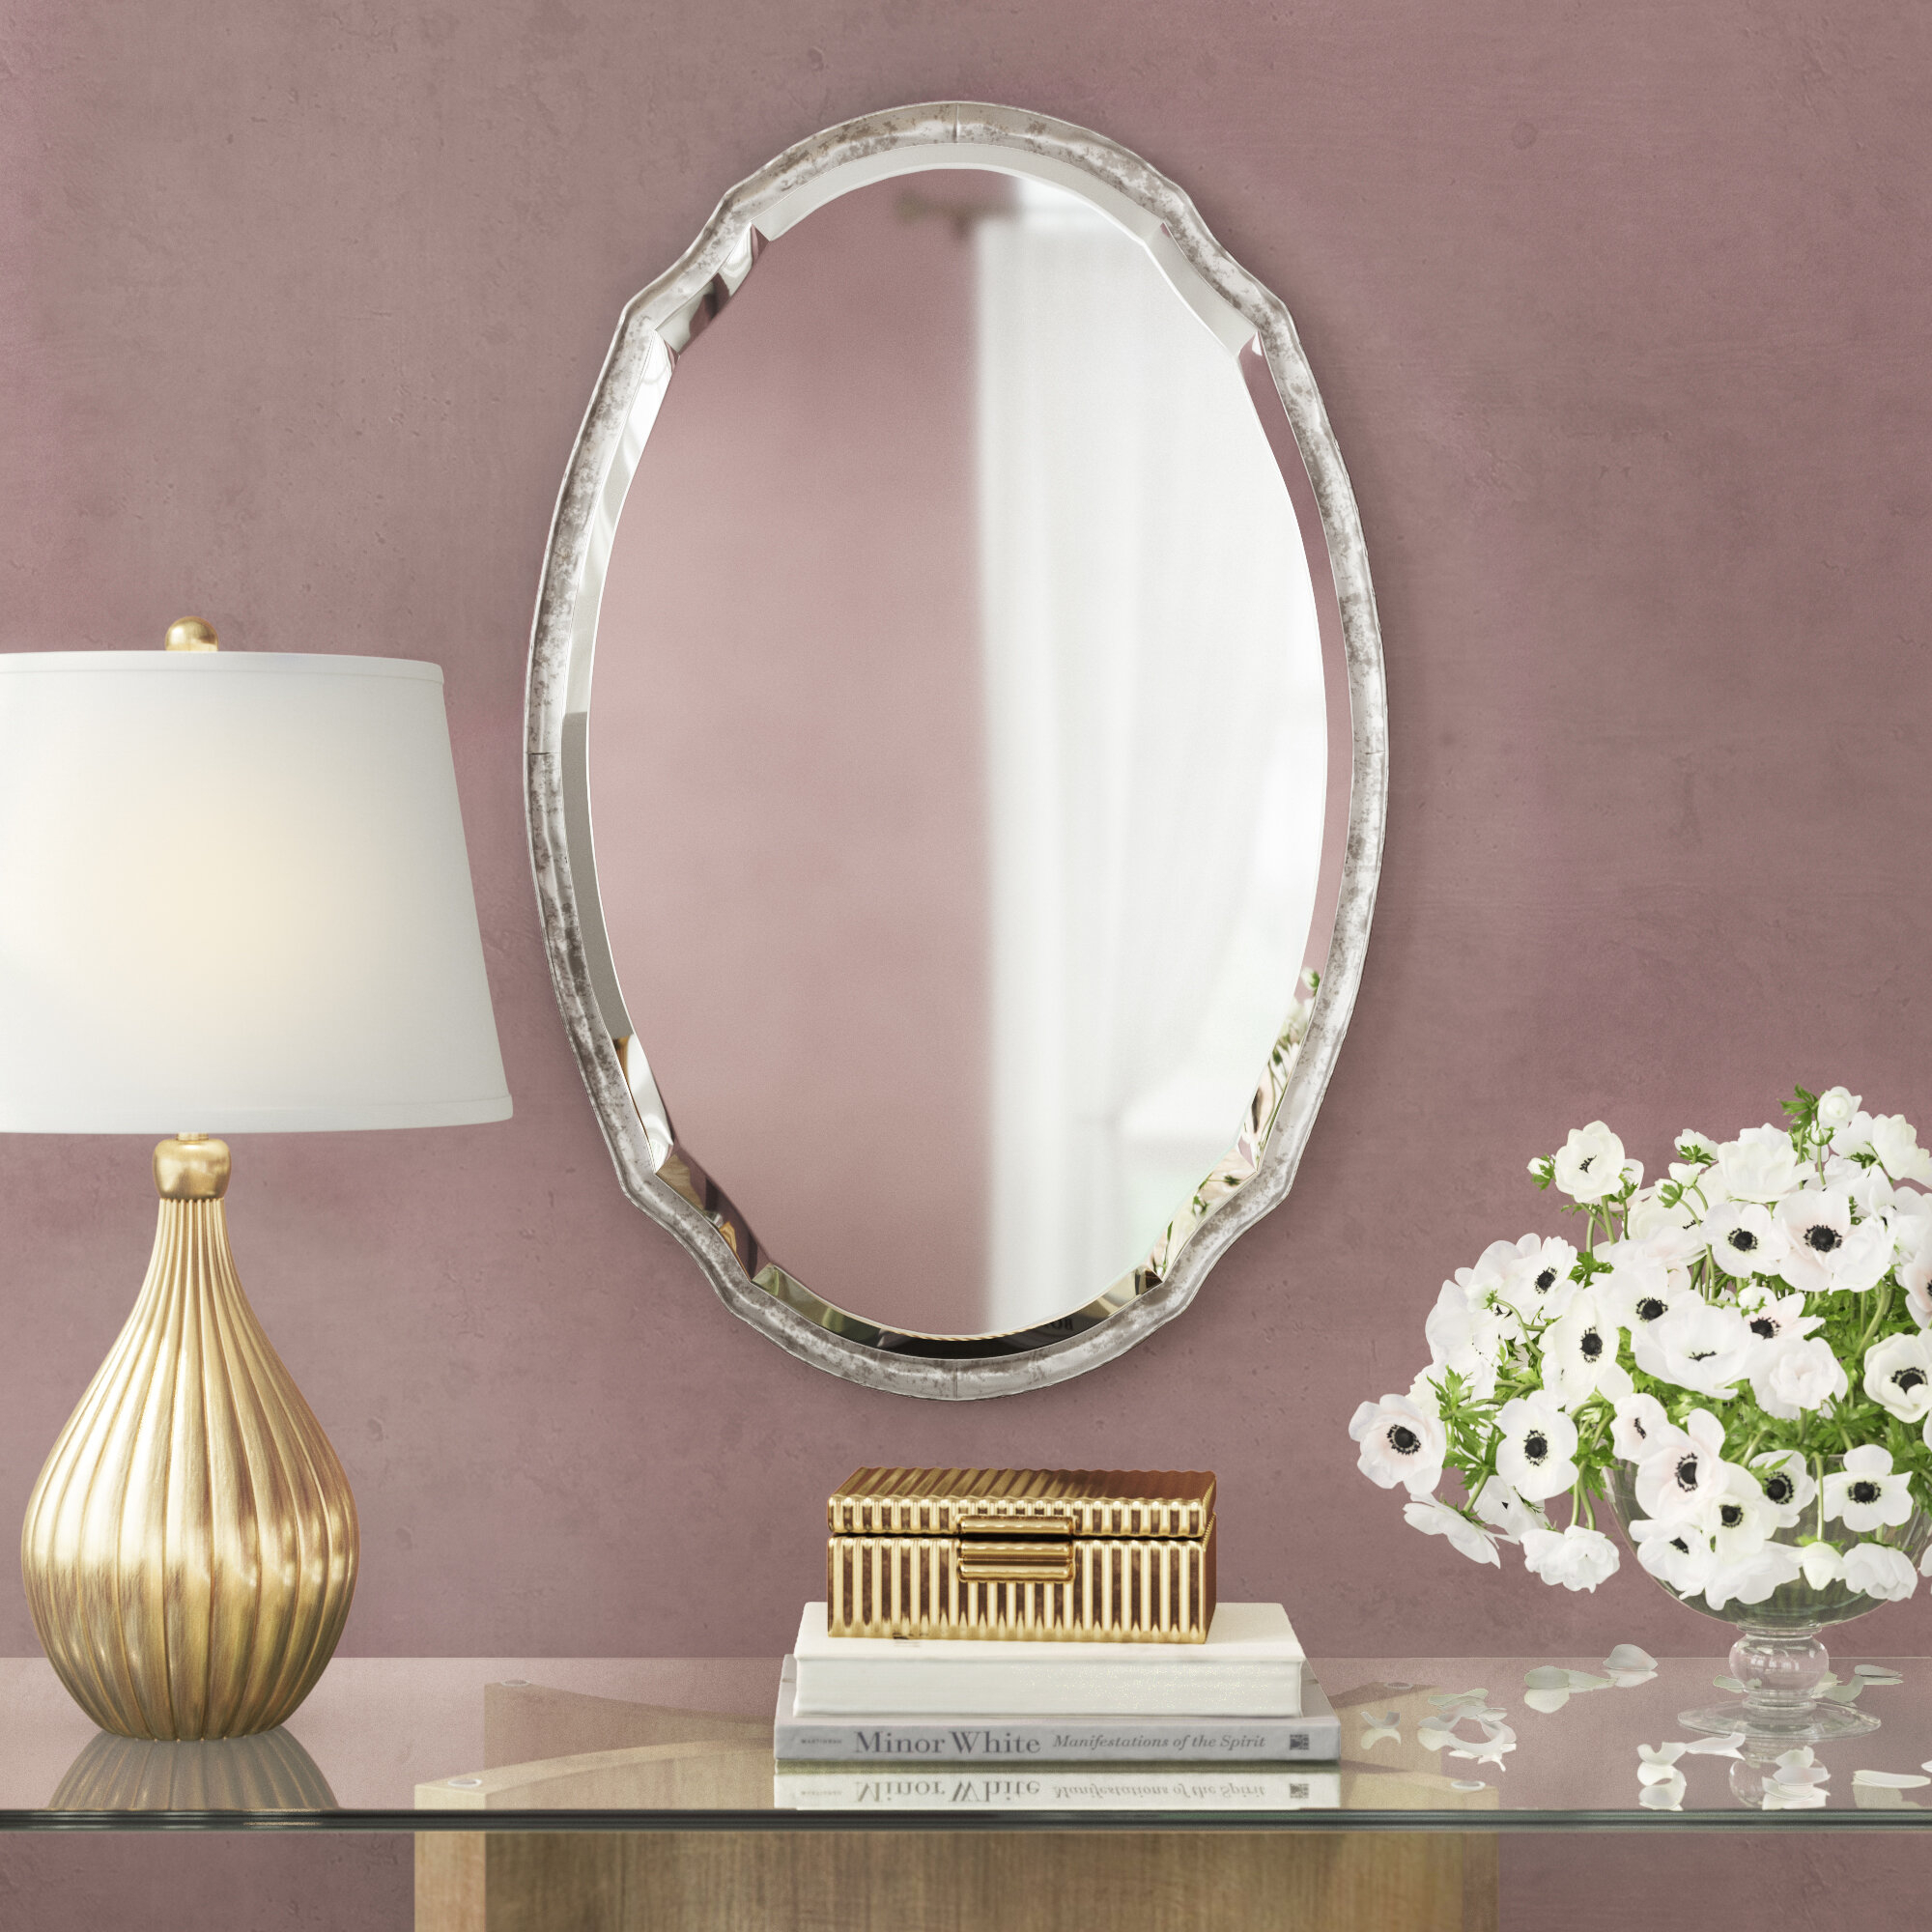 Oval Wall Mounted Mirrors You'll Love In 2019 | Wayfair With Regard To Alissa Traditional Wall Mirrors (View 6 of 20)